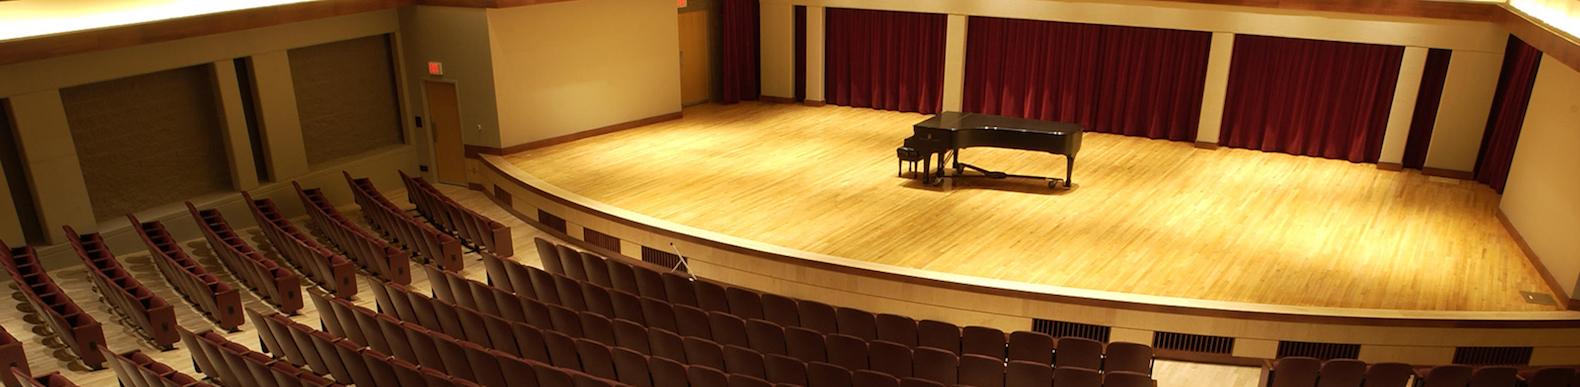 recital hall piano